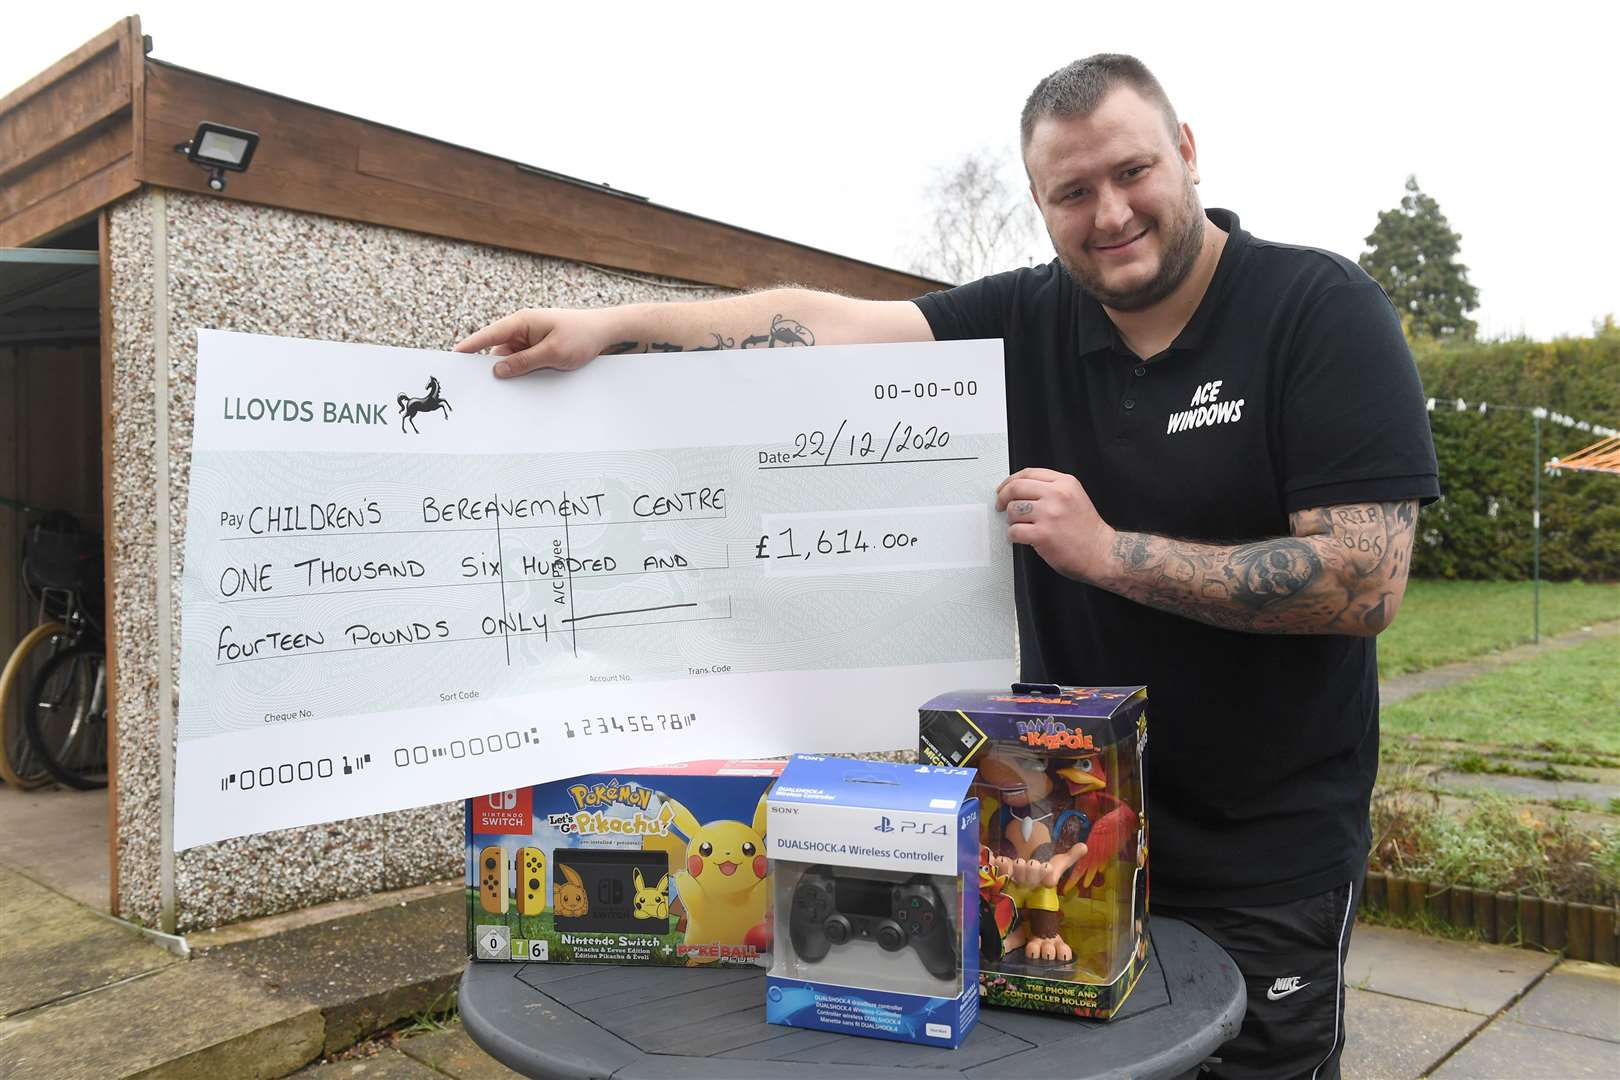 Paul Reavill who has raised money for Children's Bereavement Centre, by holding a raffle on his facebook page, Games Room.